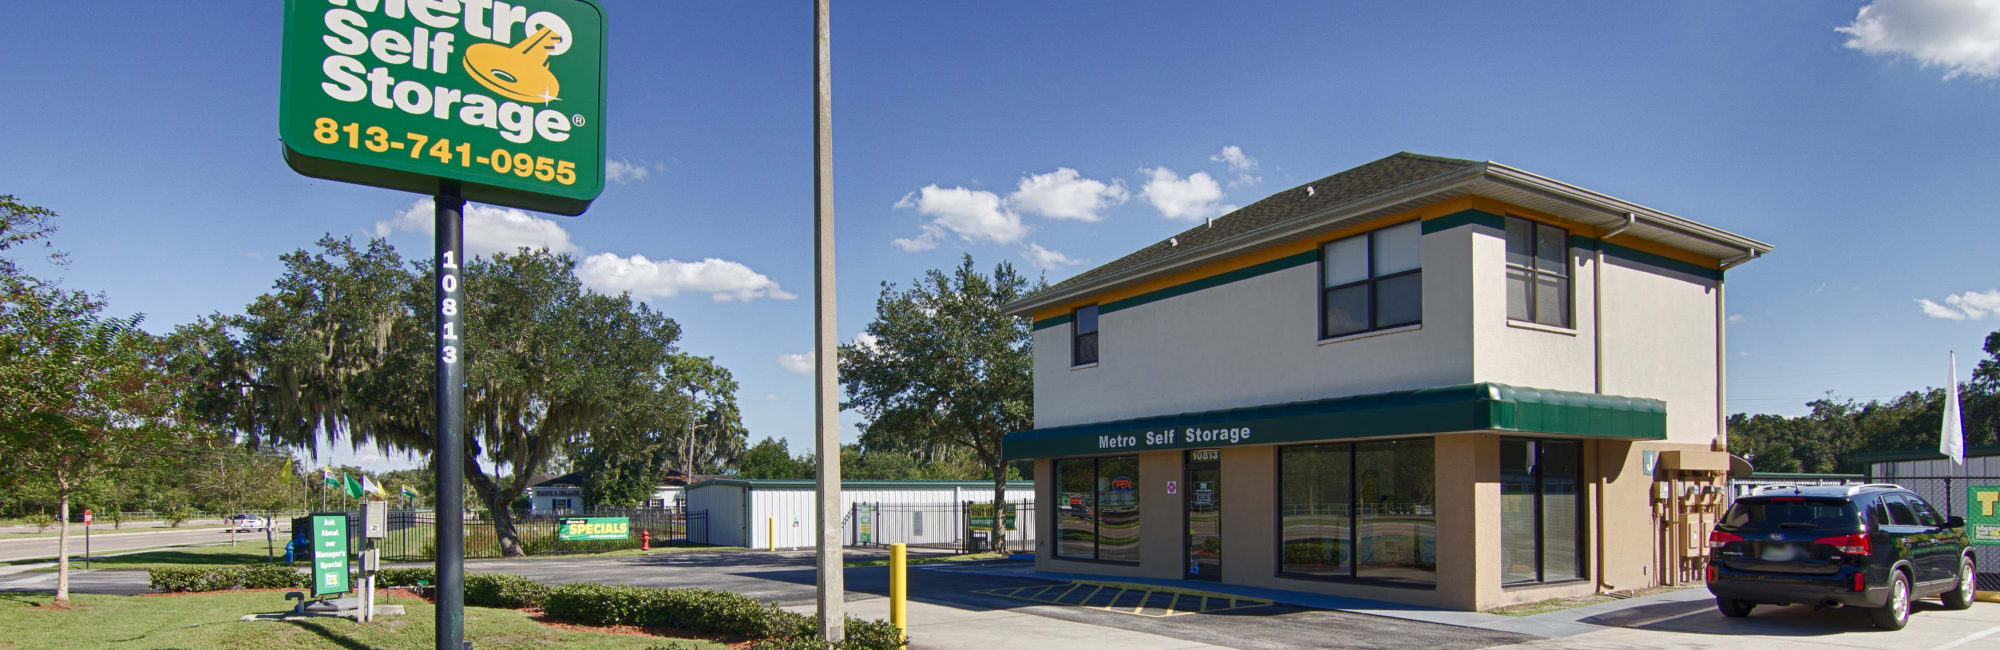 Metro Self Storage in Riverview, FL